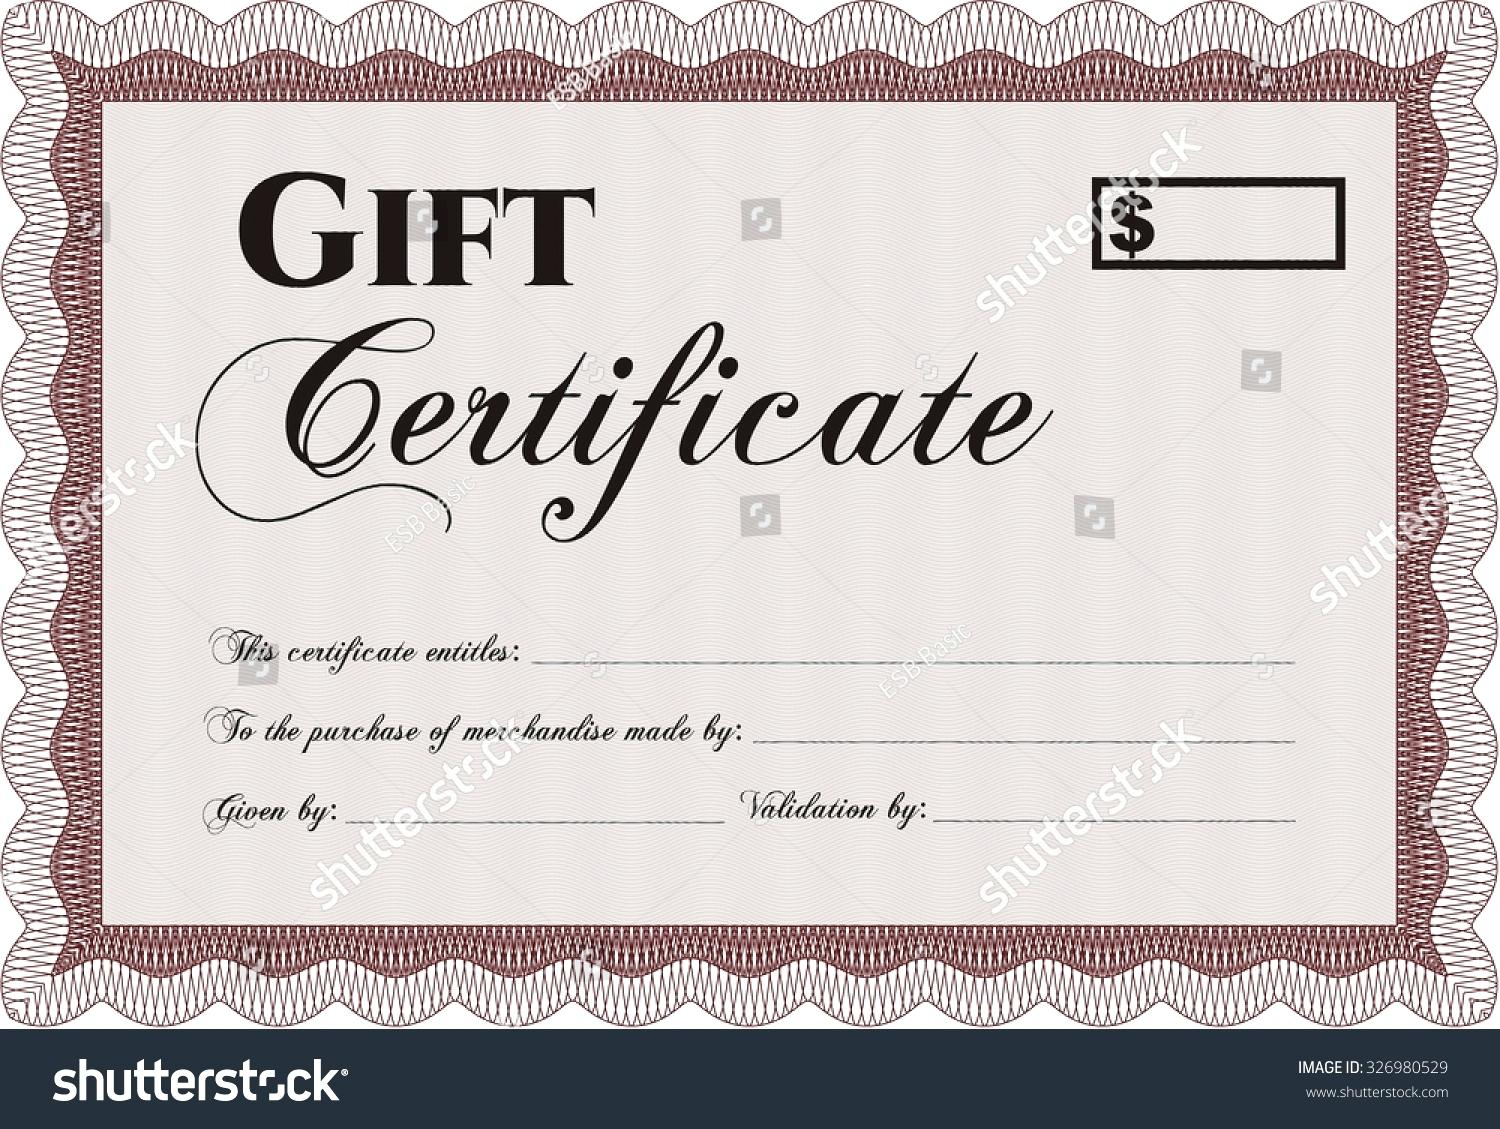 Bunch Ideas For This Certificate Entitles The Bearer Inside This Certificate Entitles The Bearer To Template